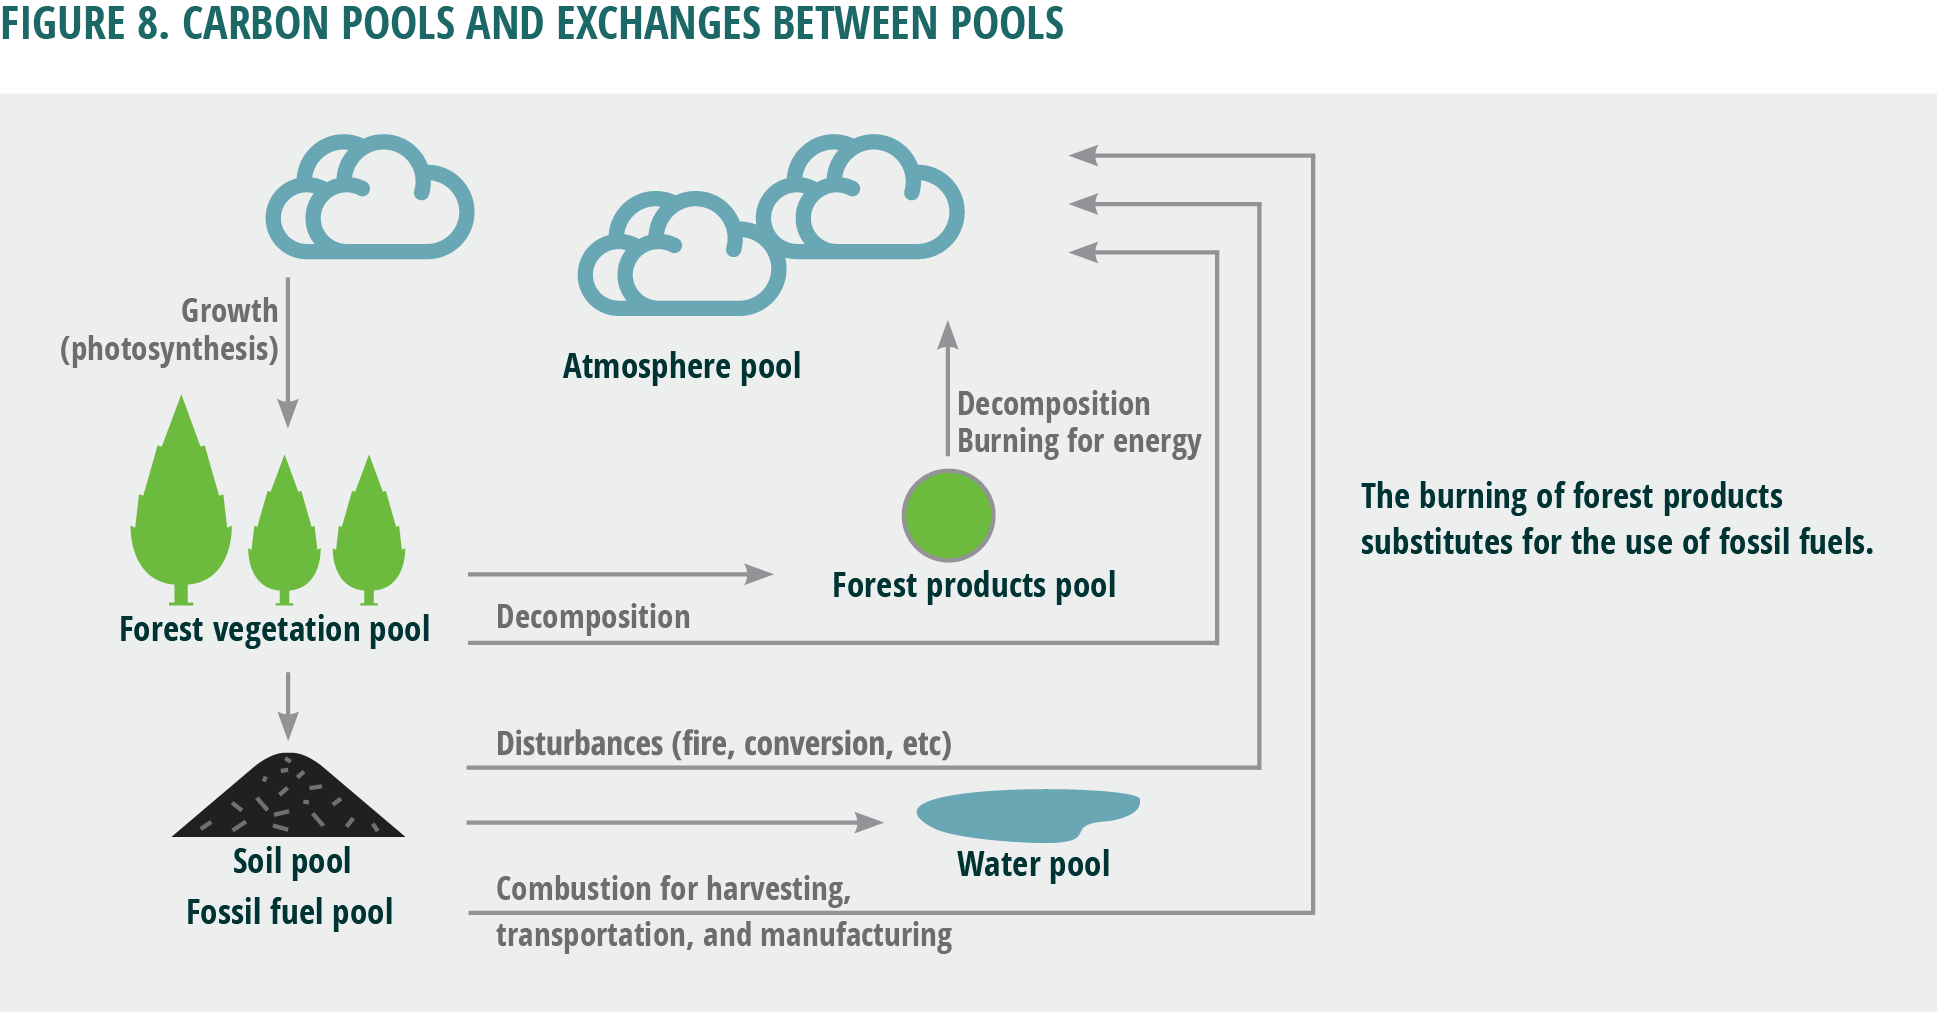 Figure 8. Carbon pools and exchanges between pools